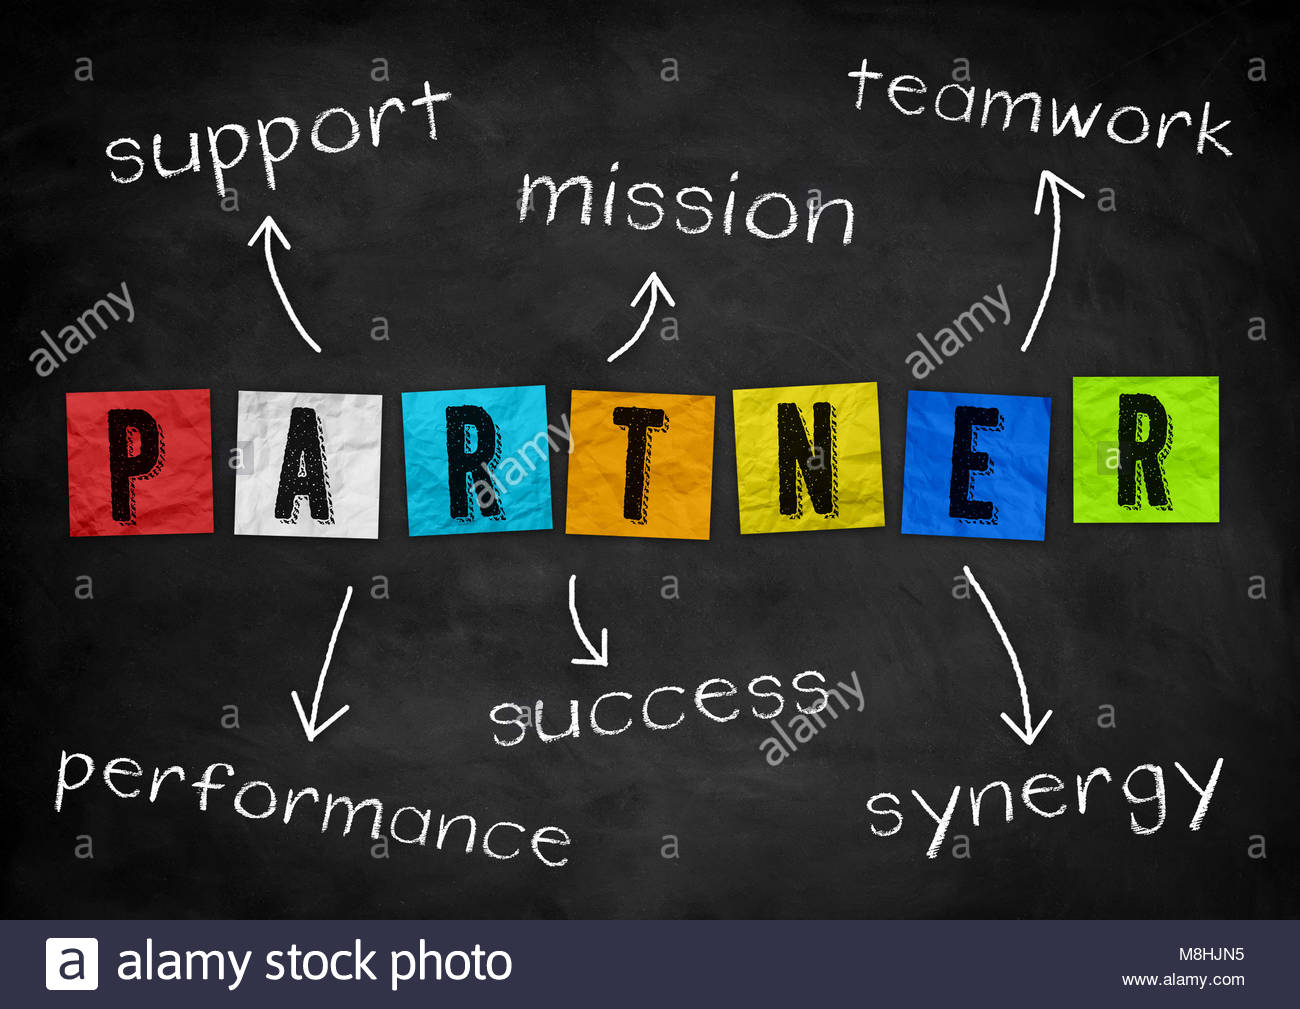 PARTNER - concetto di business Immagini Stock